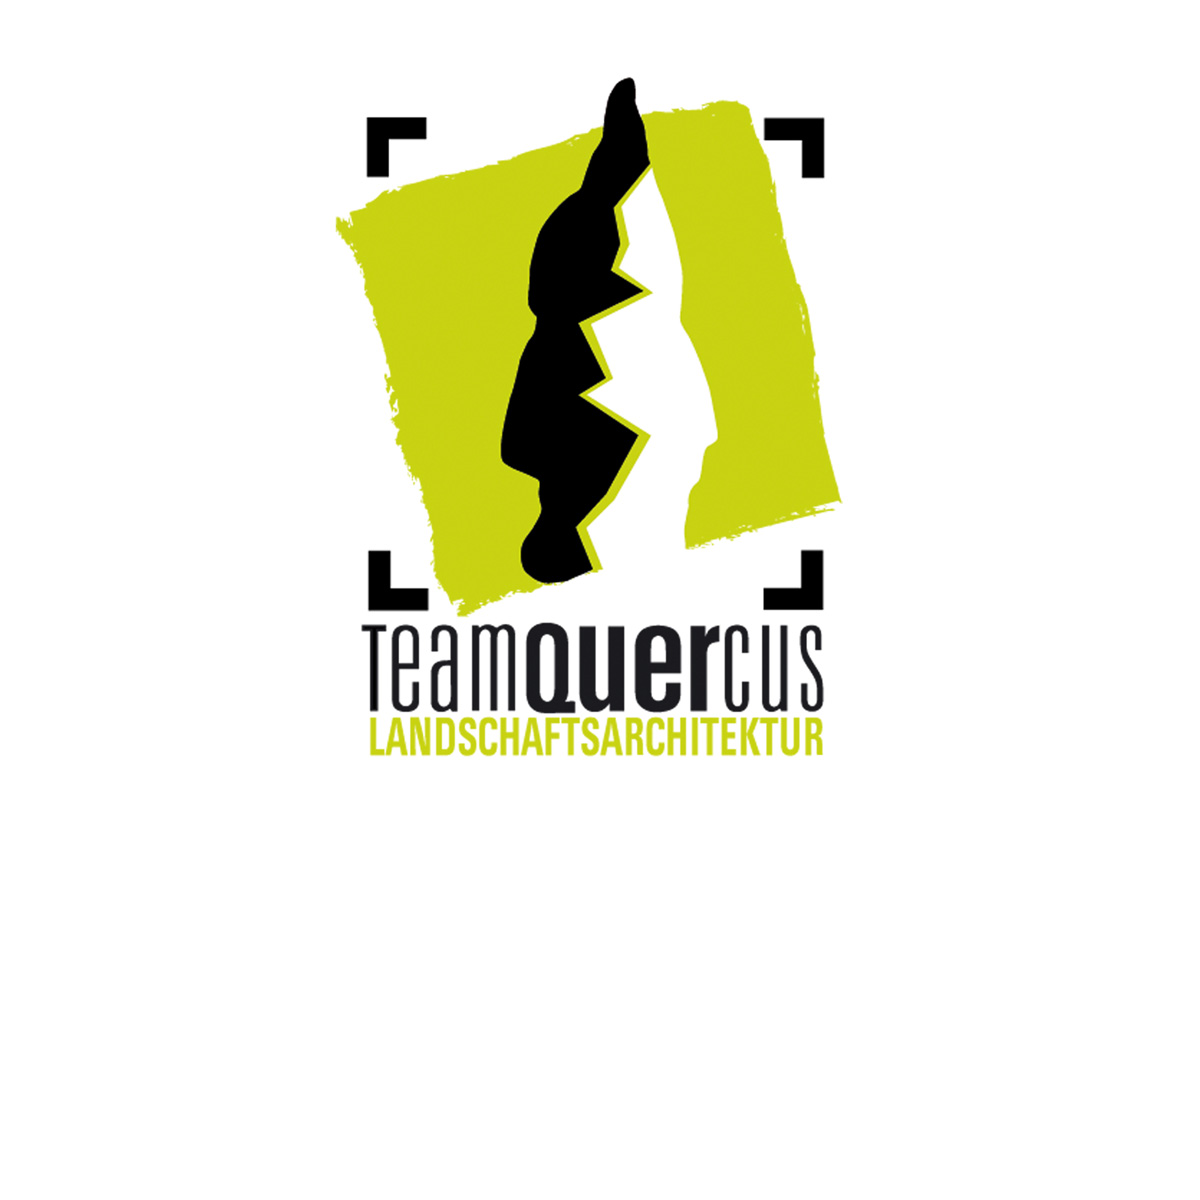 Logo Team Quercus